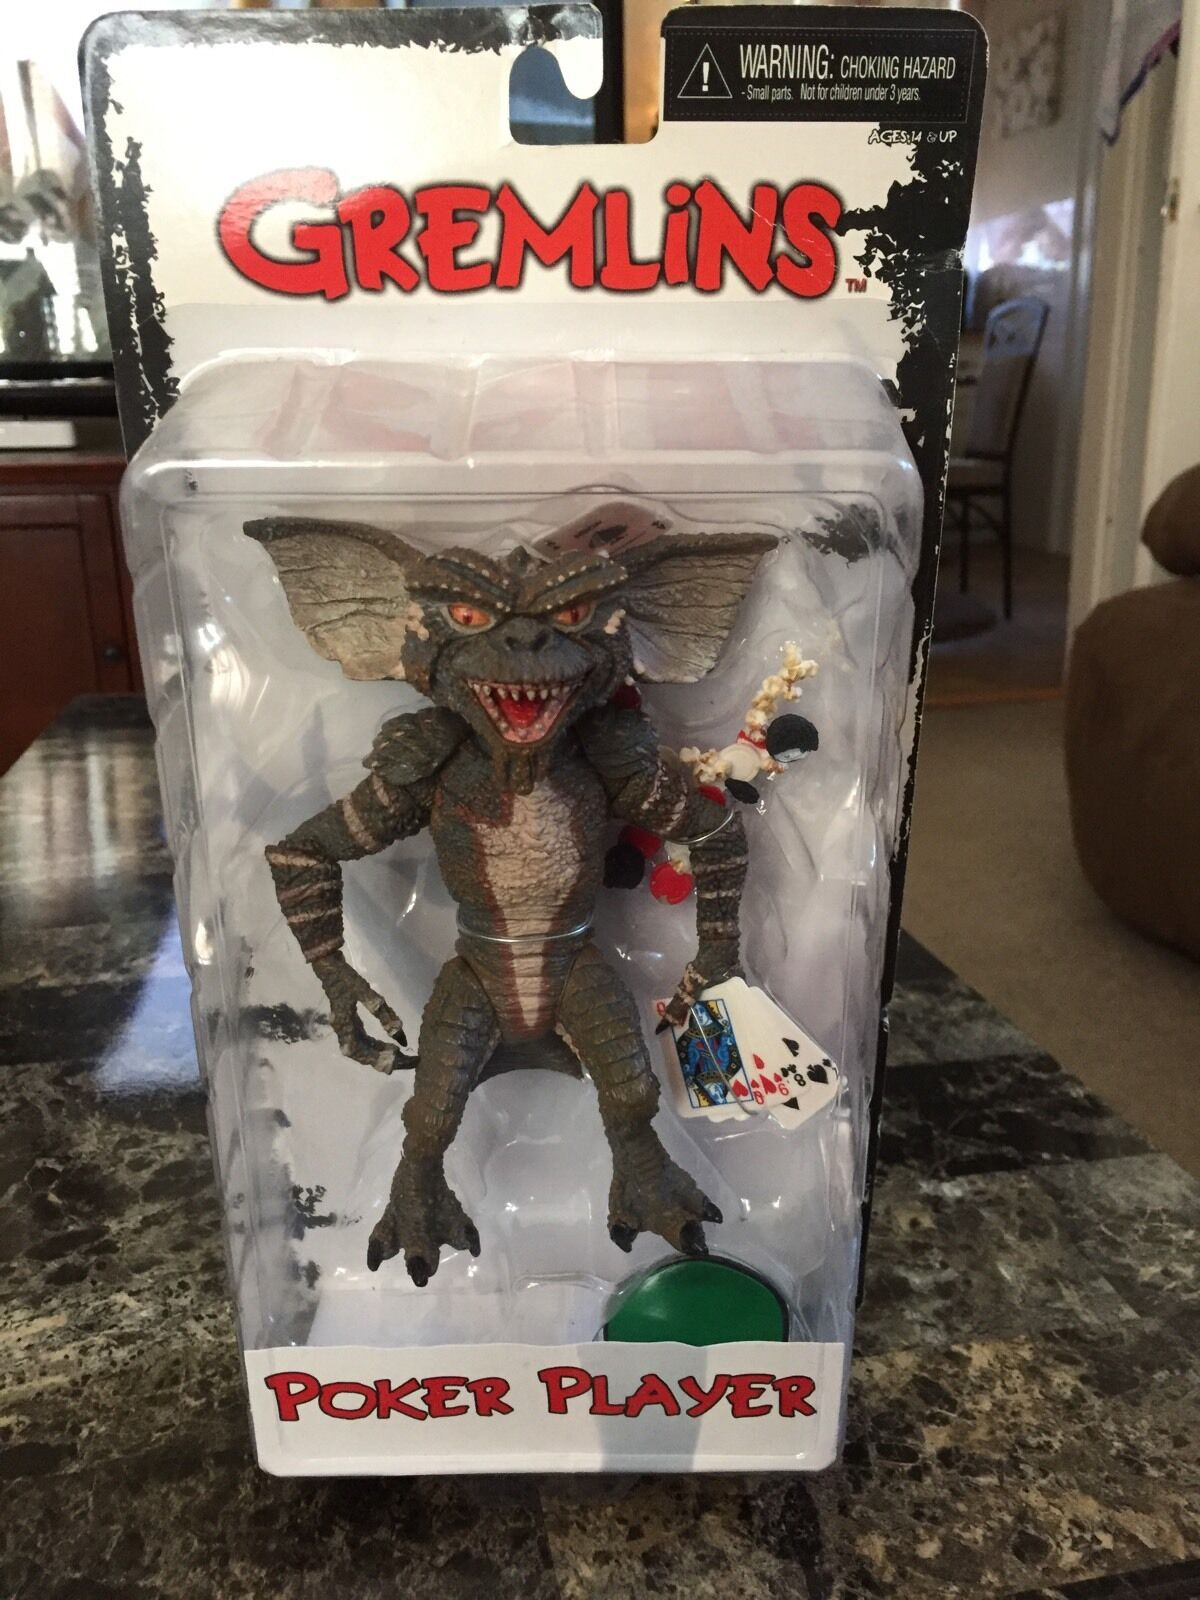 NECA Gremlins Poker Player 6 Inch Reel Toys Sealed